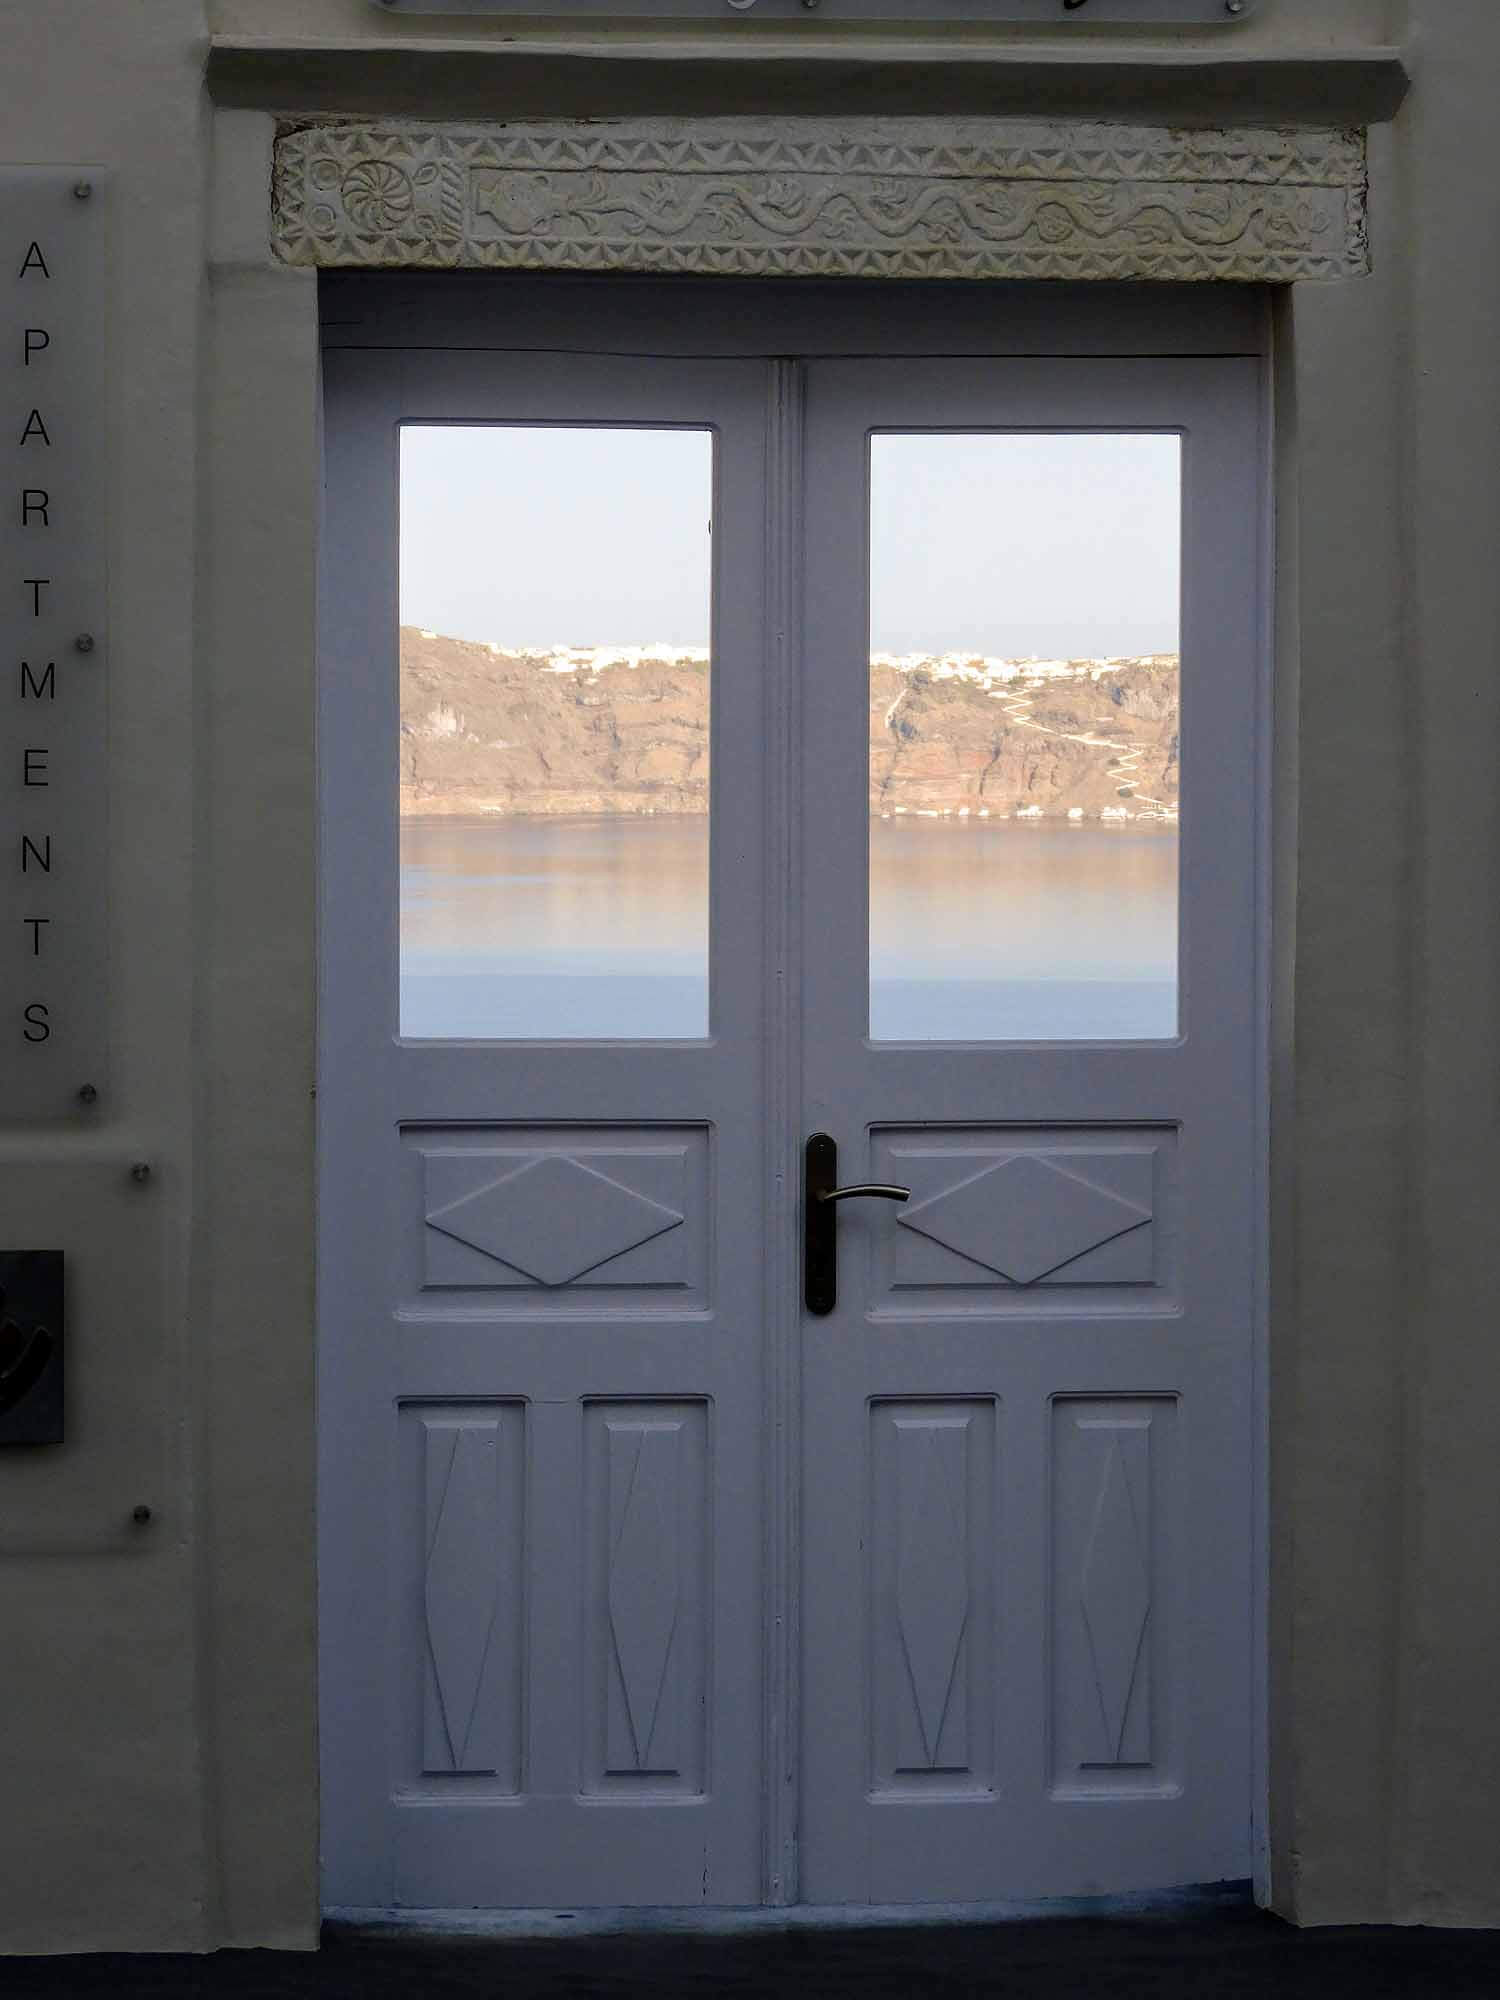 greece-santorini-fira-doors.jpg